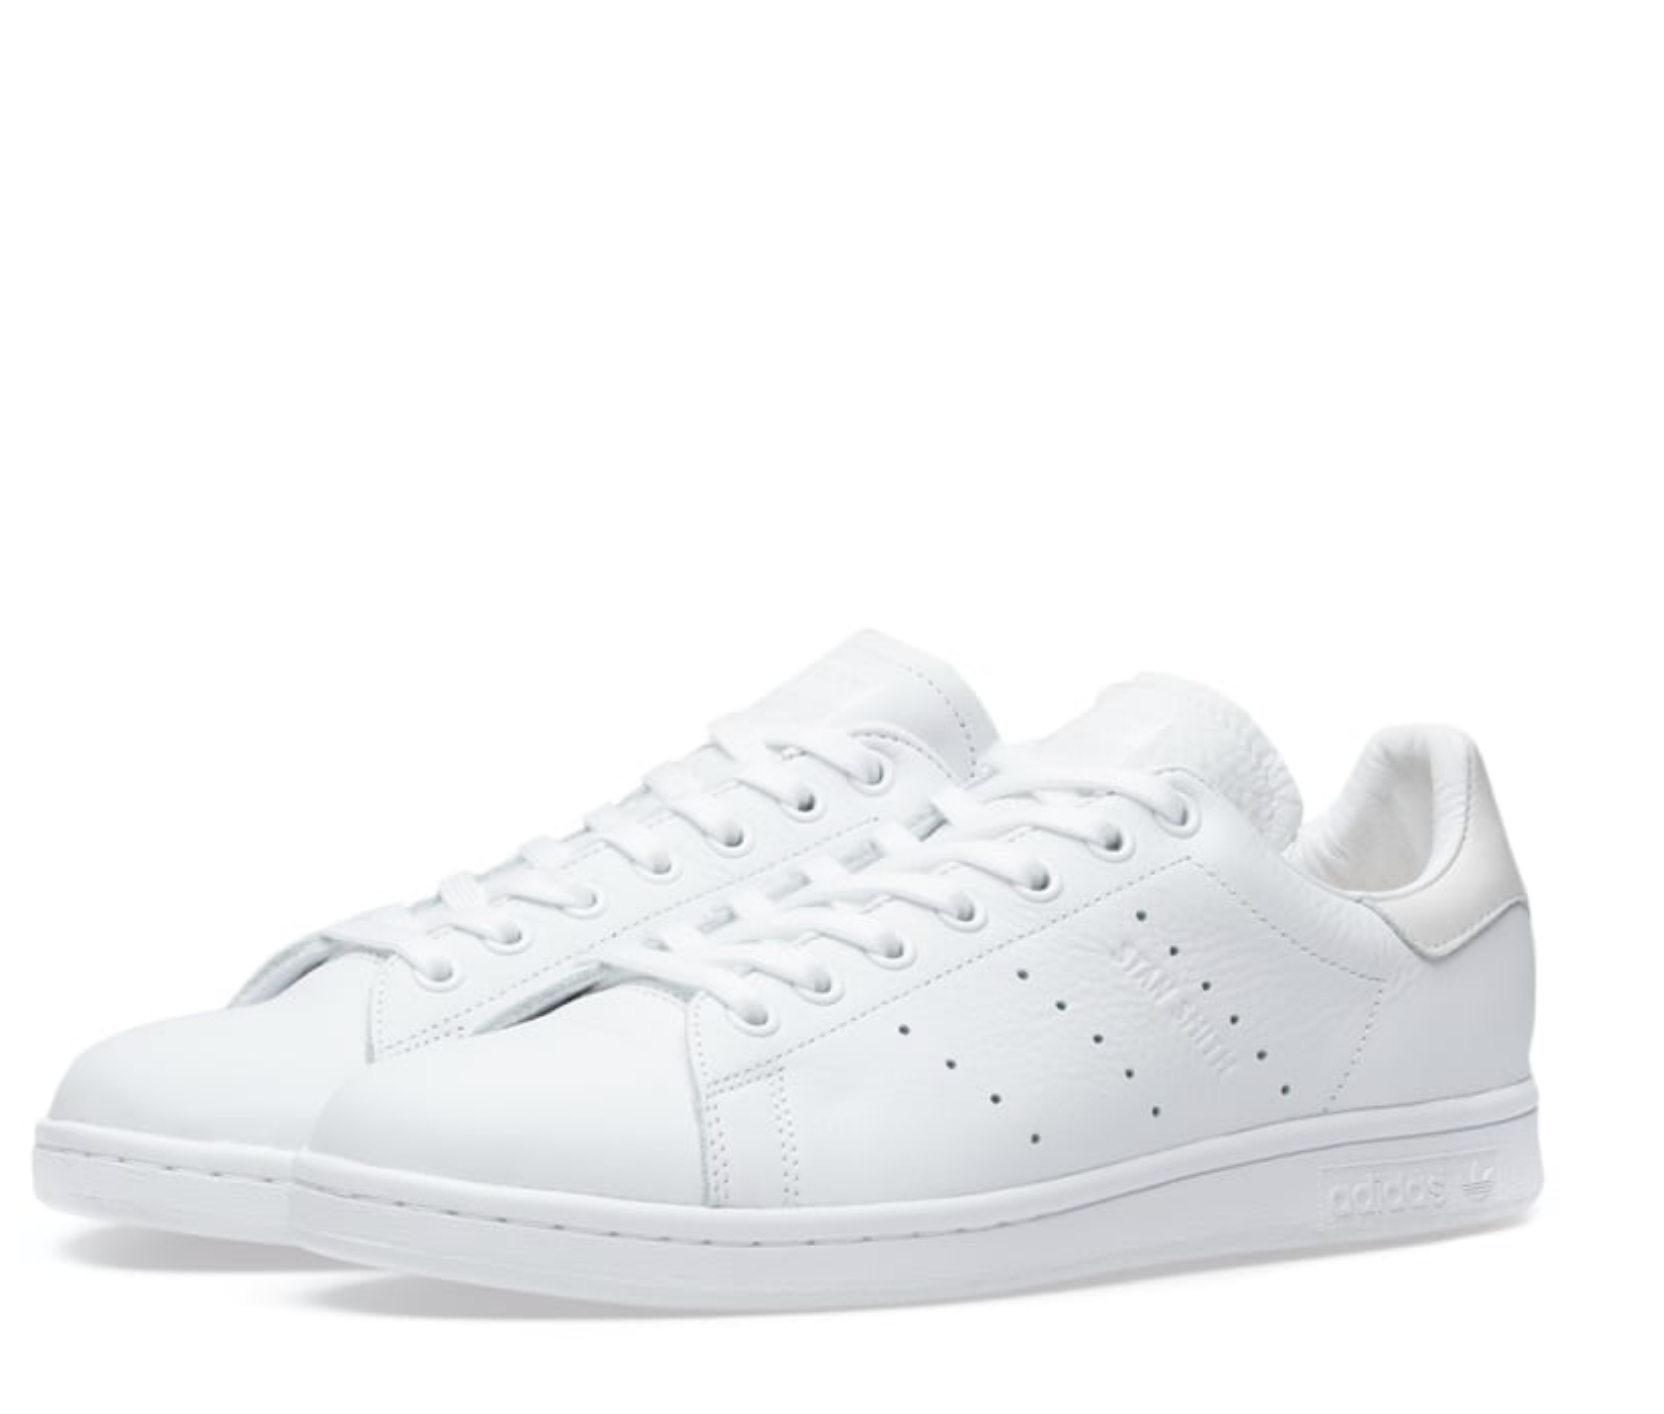 Adidas Stan Smith Forever White Sneakers $135 AUD | White